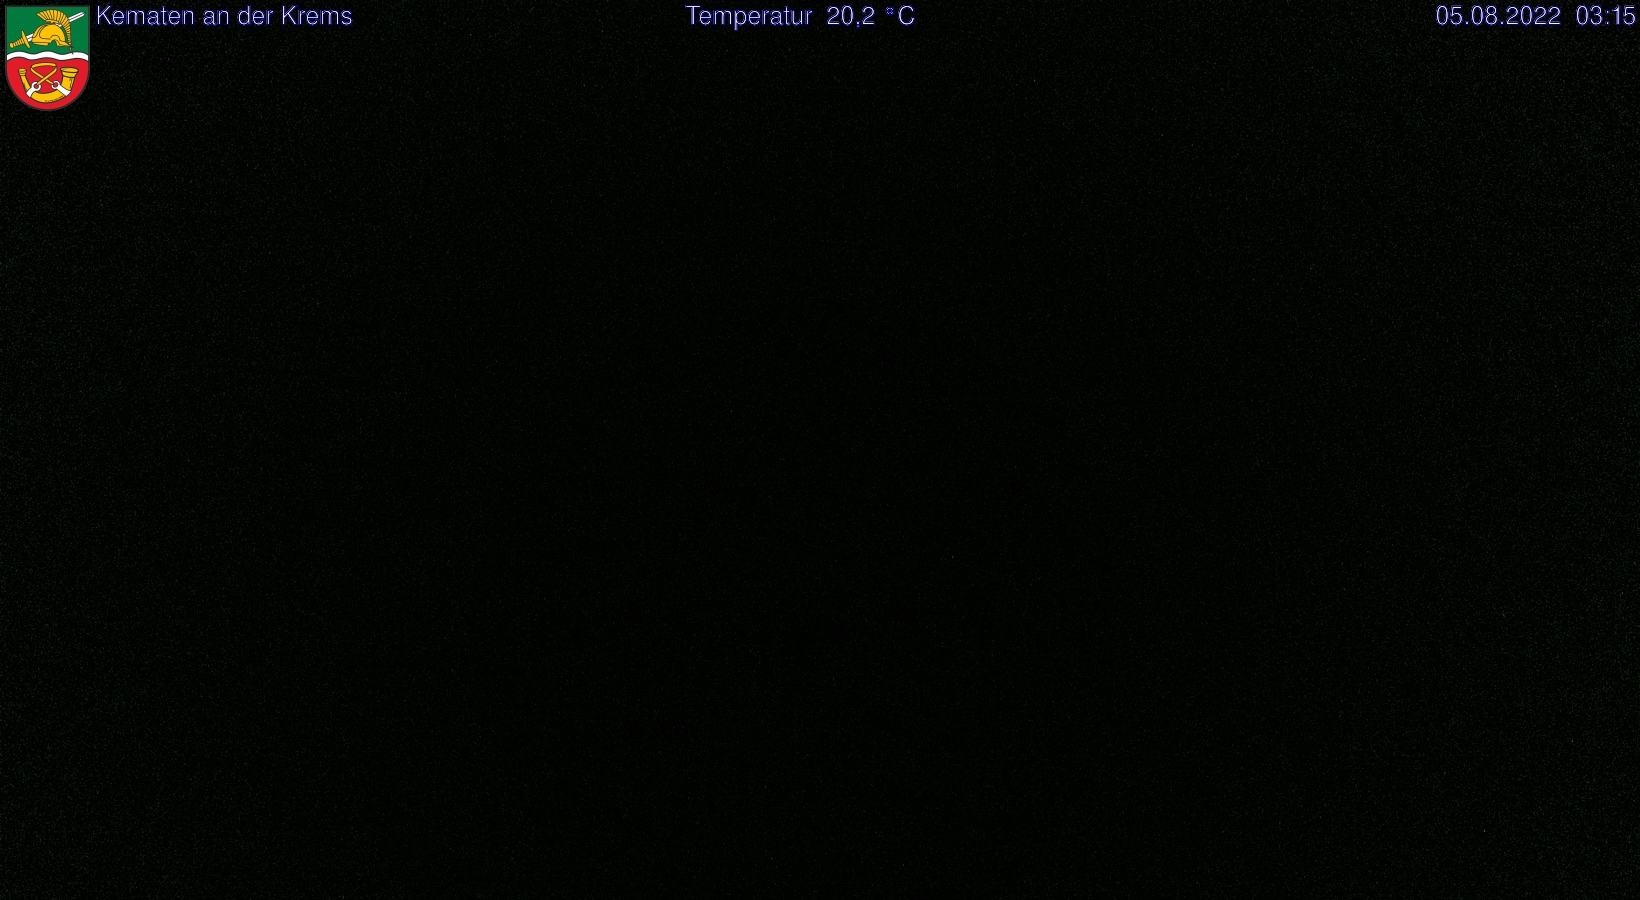 Webcam Kematen an der Krems